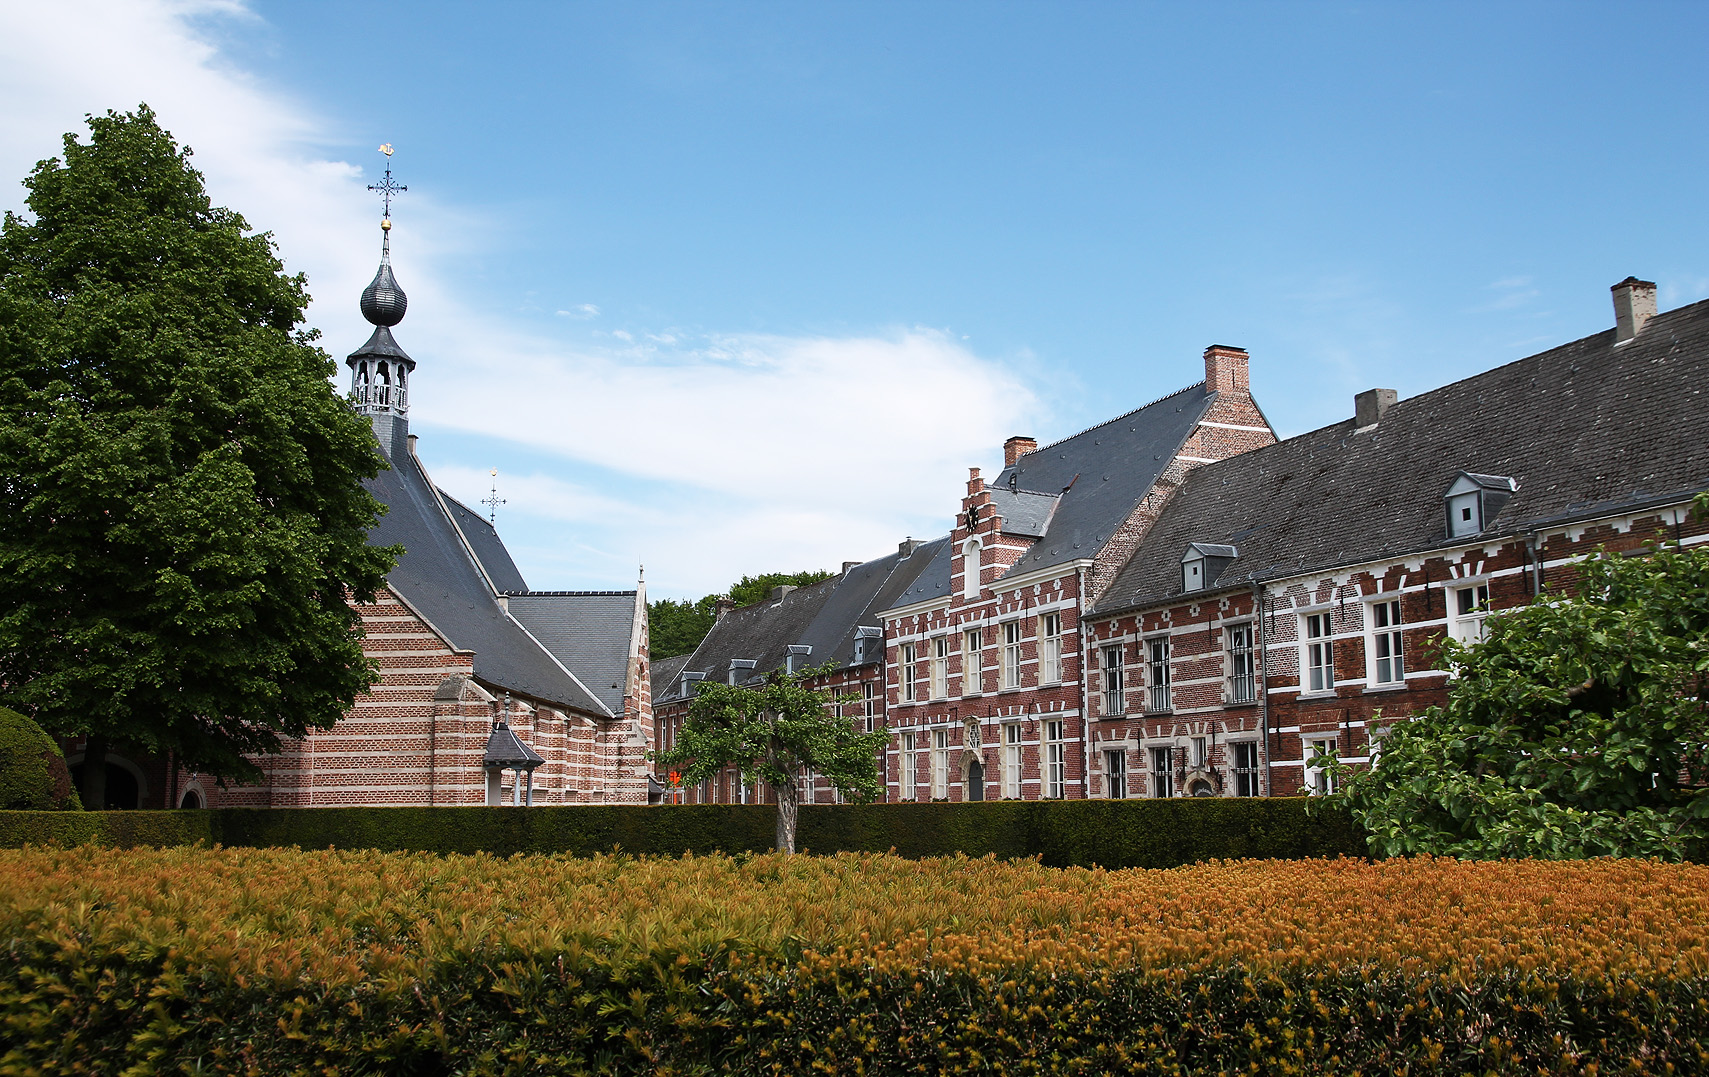 The béguinage of Herentals.